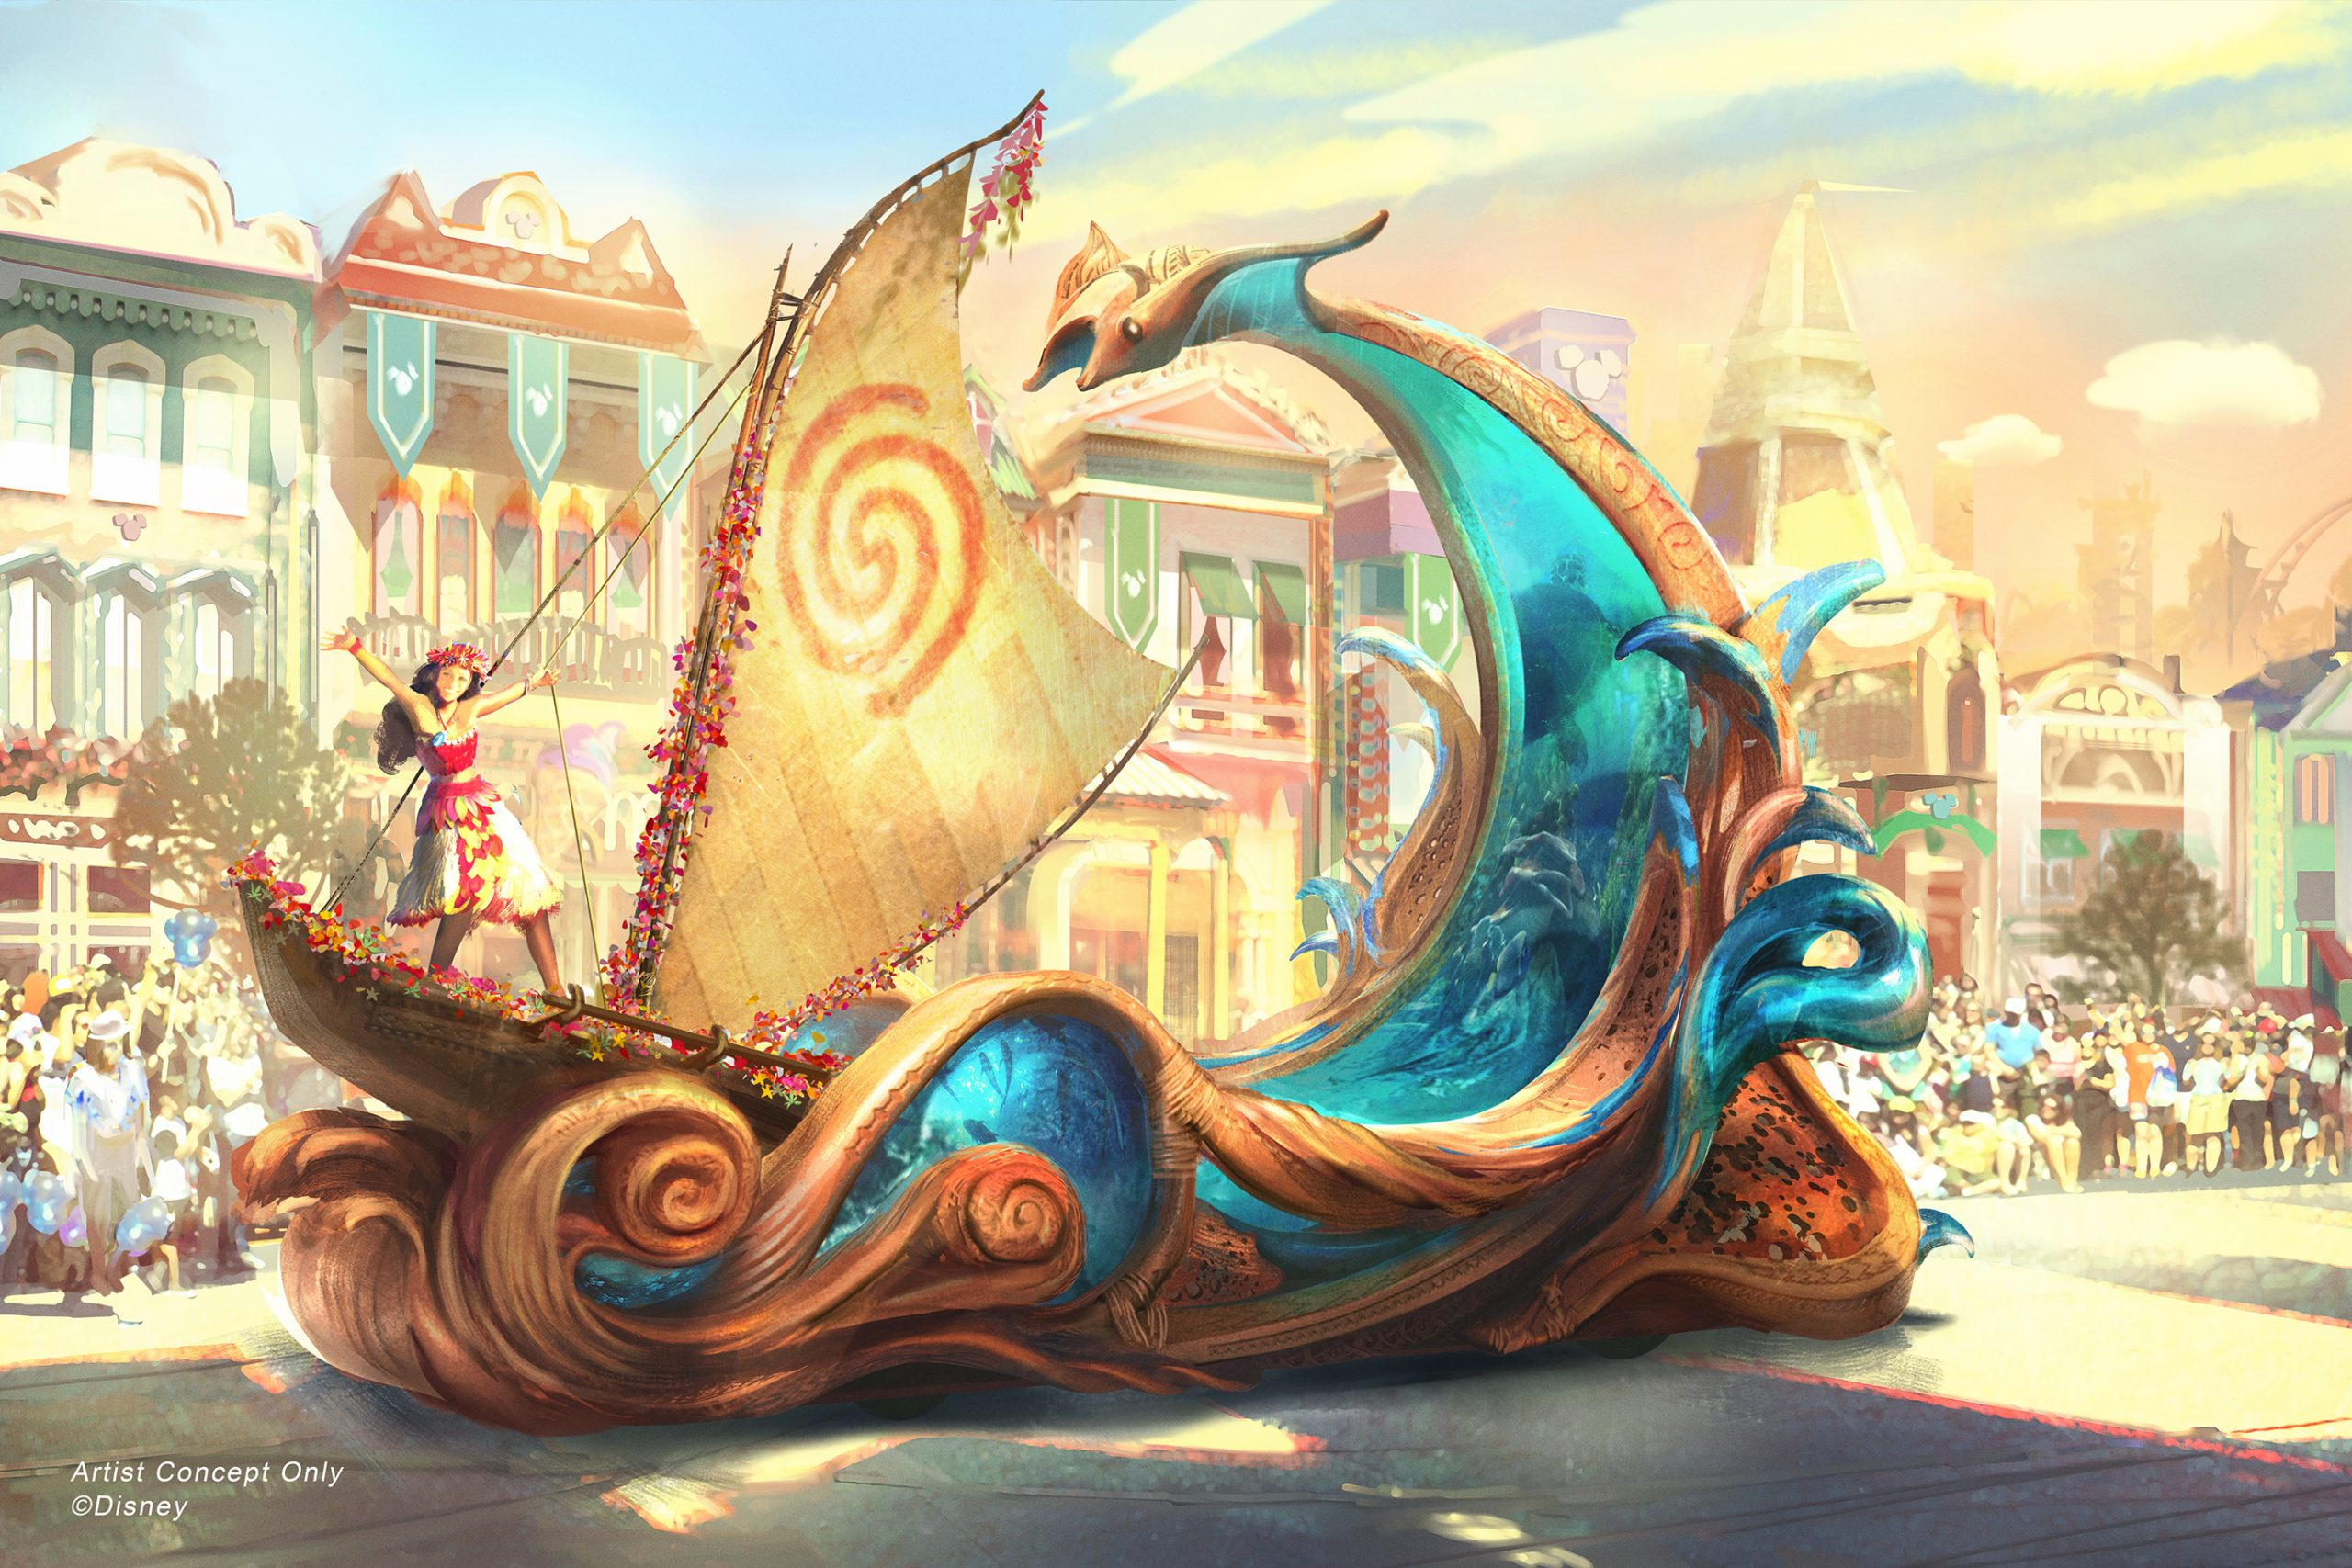 Disneyland news: announced at the d23 expo, the new Magic Happens parade will launch at Disneyland in the spring!